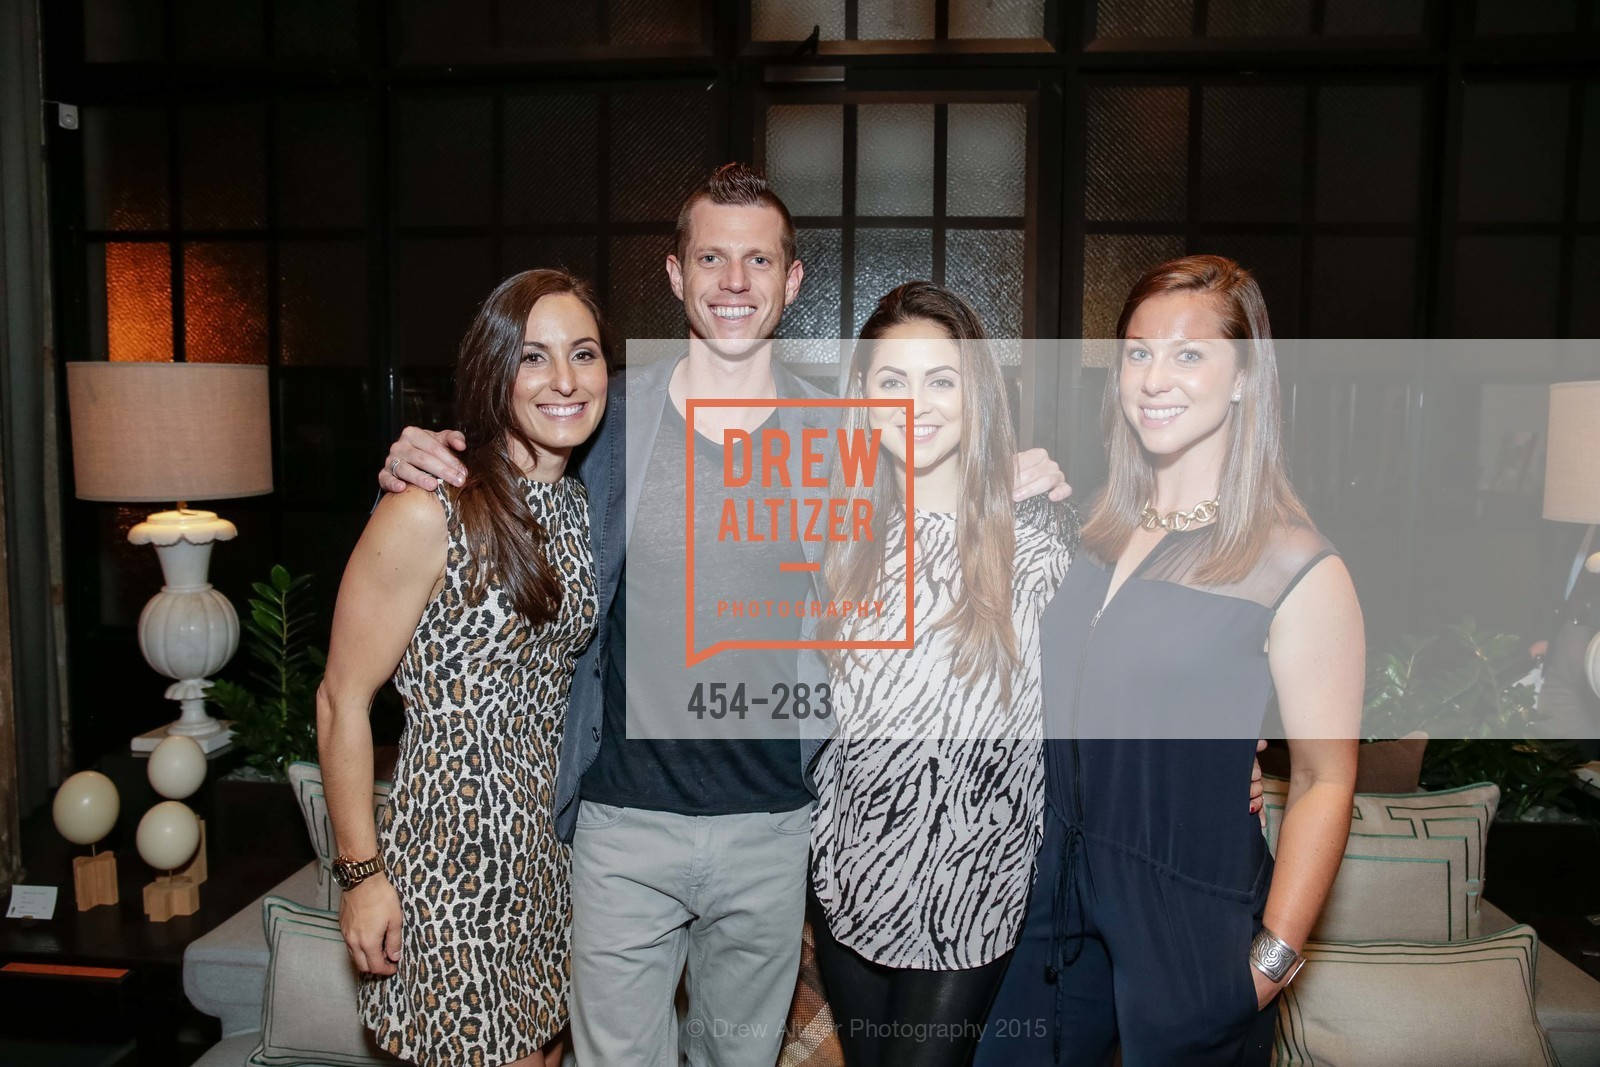 Anna Freedenfeld, Will Harlan, Nikita Stone, Amanda Harlan, Jay Jeffers Host Will Harlan, Jay Jeffers CAVALIER. 1035 Post Street, San Francisco 94109, September 10th, 2015,Drew Altizer, Drew Altizer Photography, full-service agency, private events, San Francisco photographer, photographer california